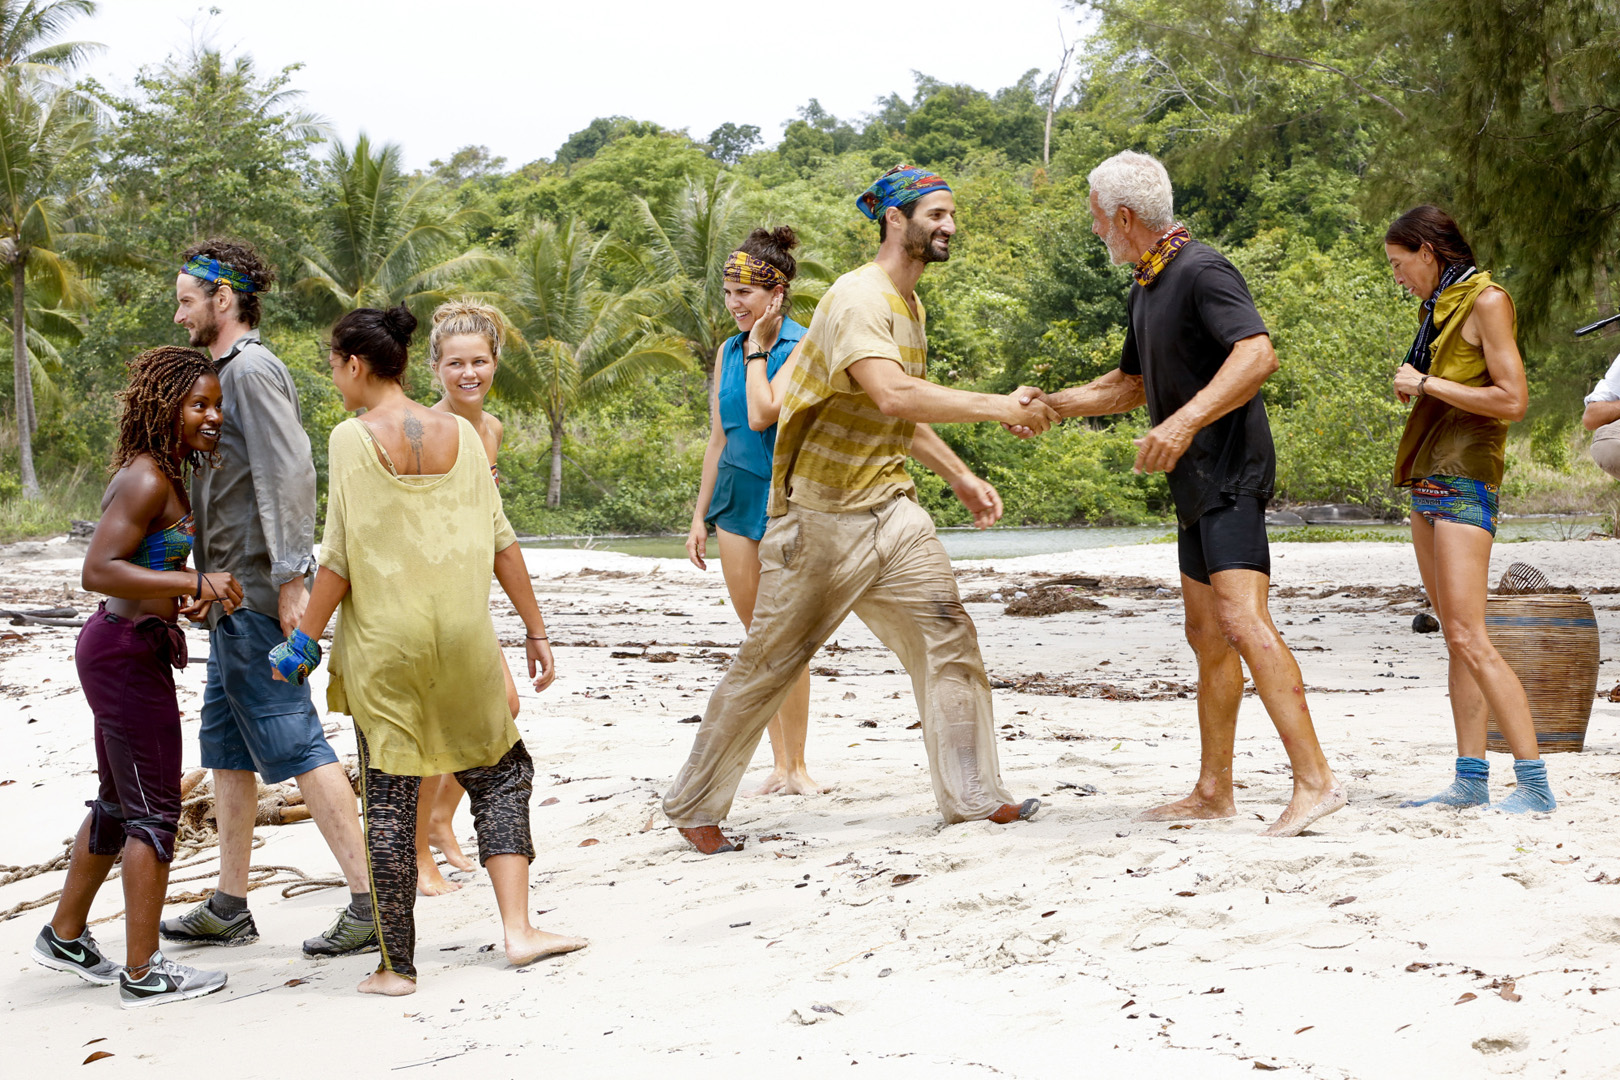 It's a fresh start for the remaining Survivor: Kaoh Rong castaways.